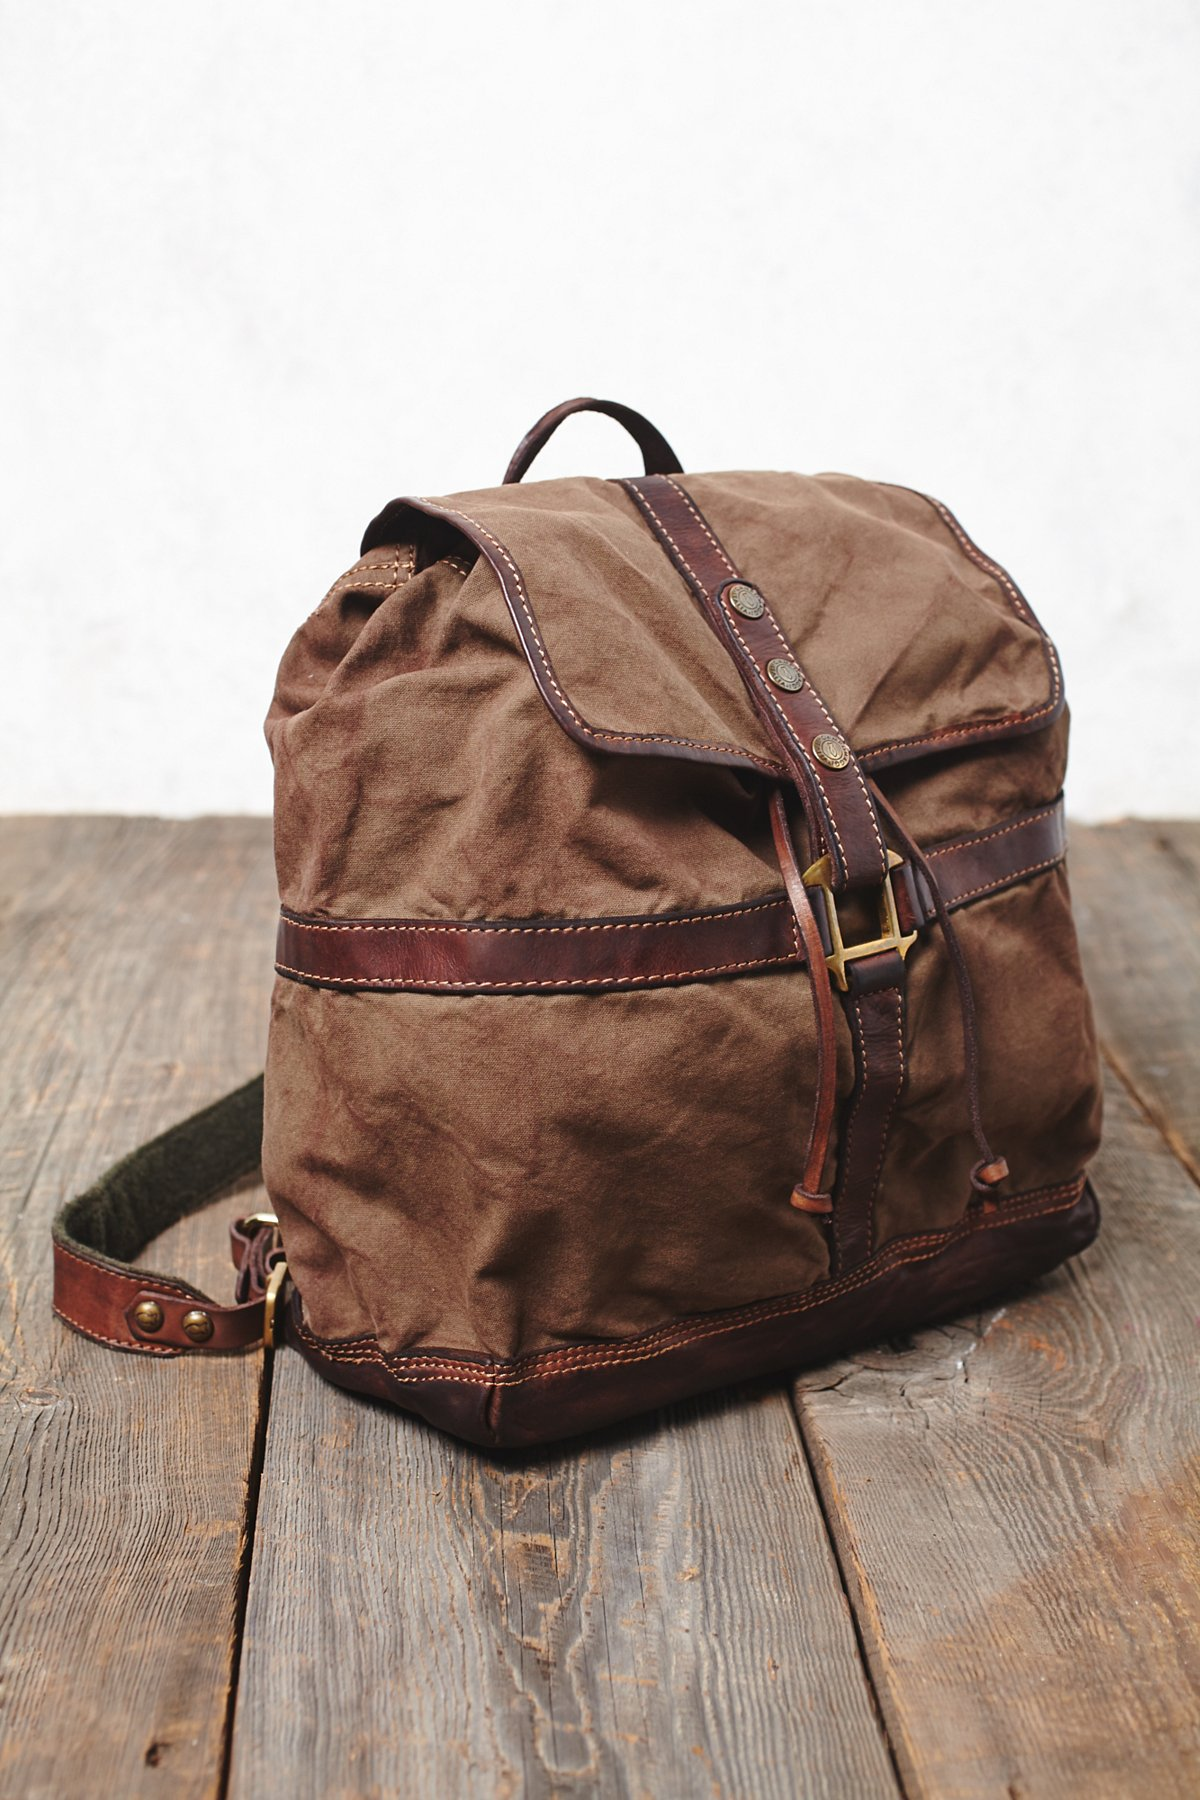 Verona Backpack